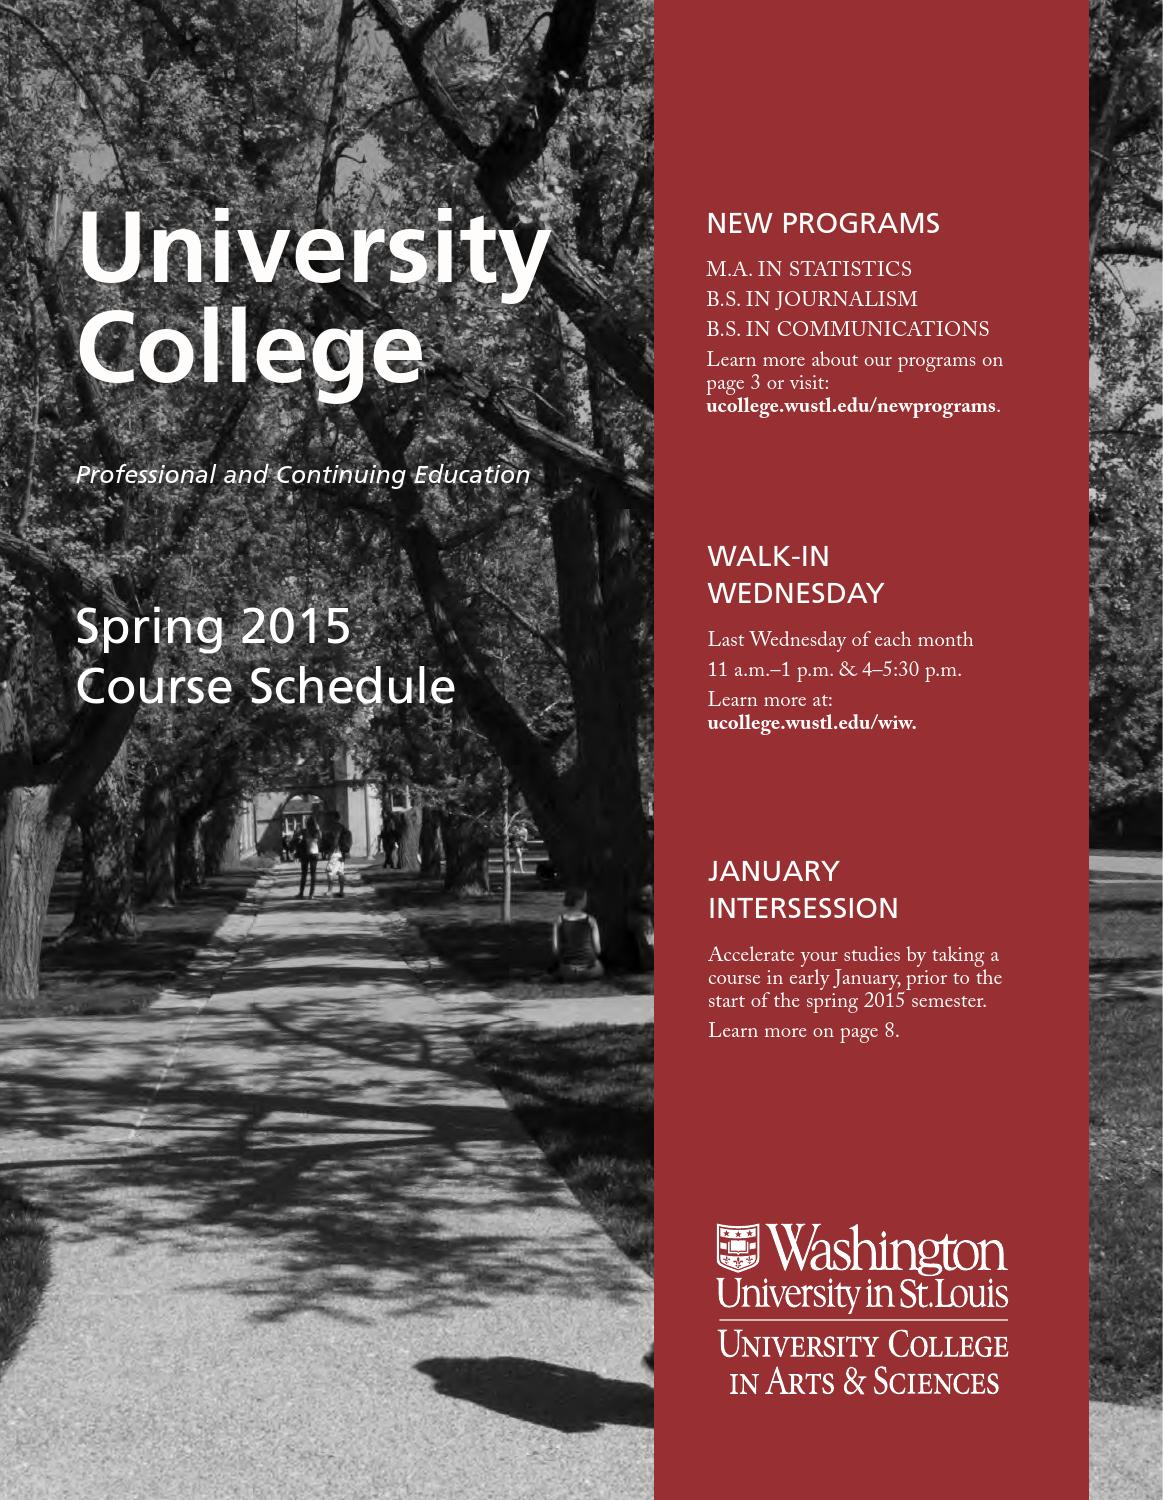 2015 Spring Course Catalog University College By 360 Degreepass Diagram Success Issuu